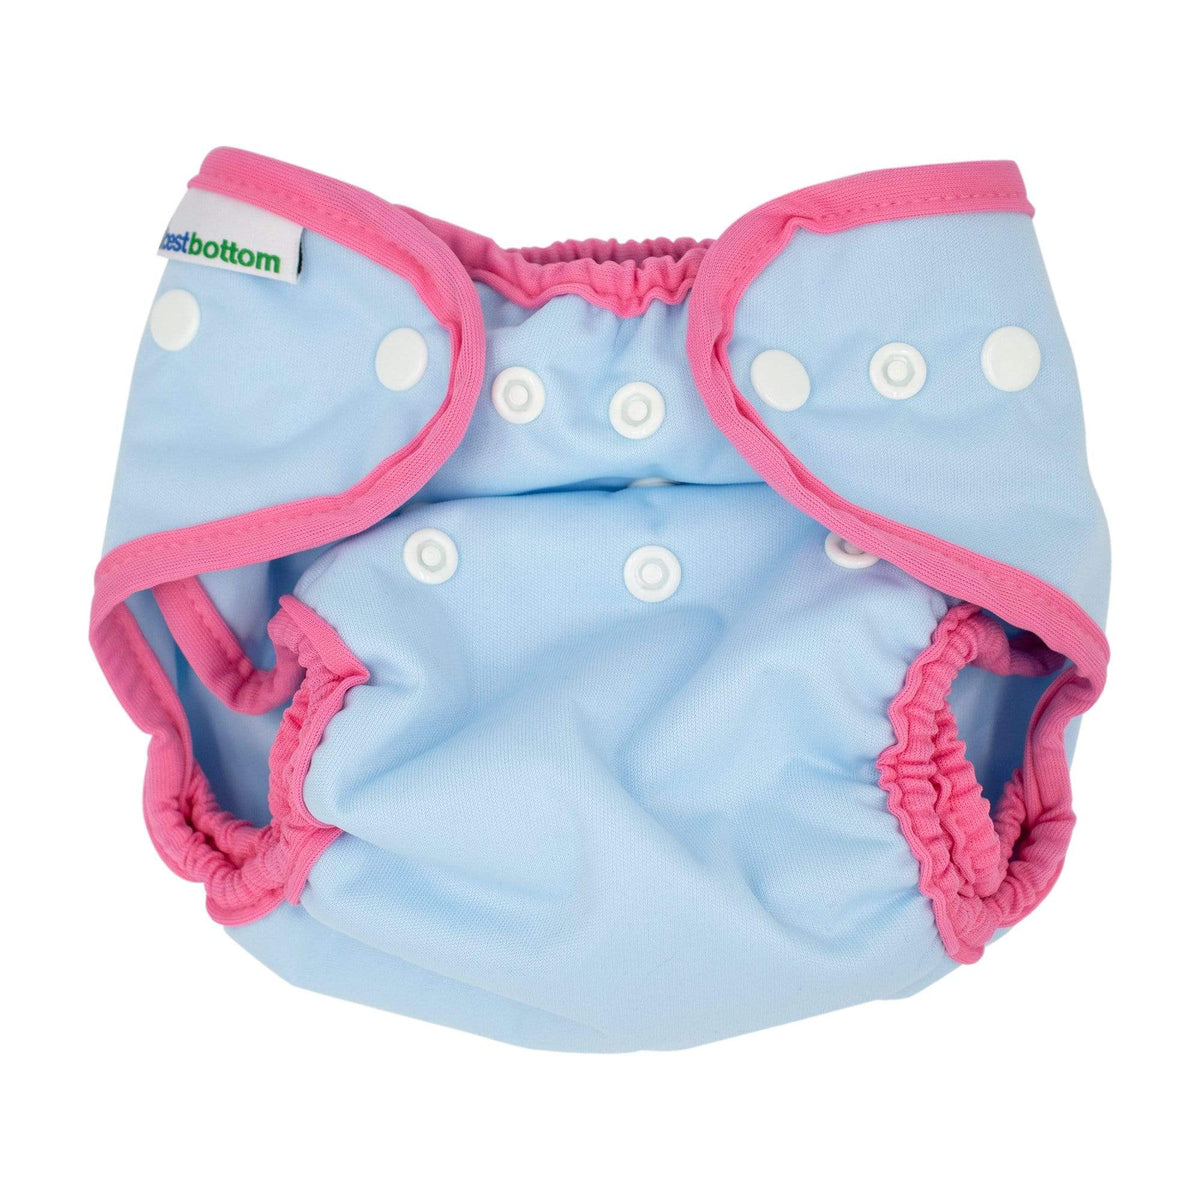 Best Bottom All In Two Diaper Cover - Bo Peep